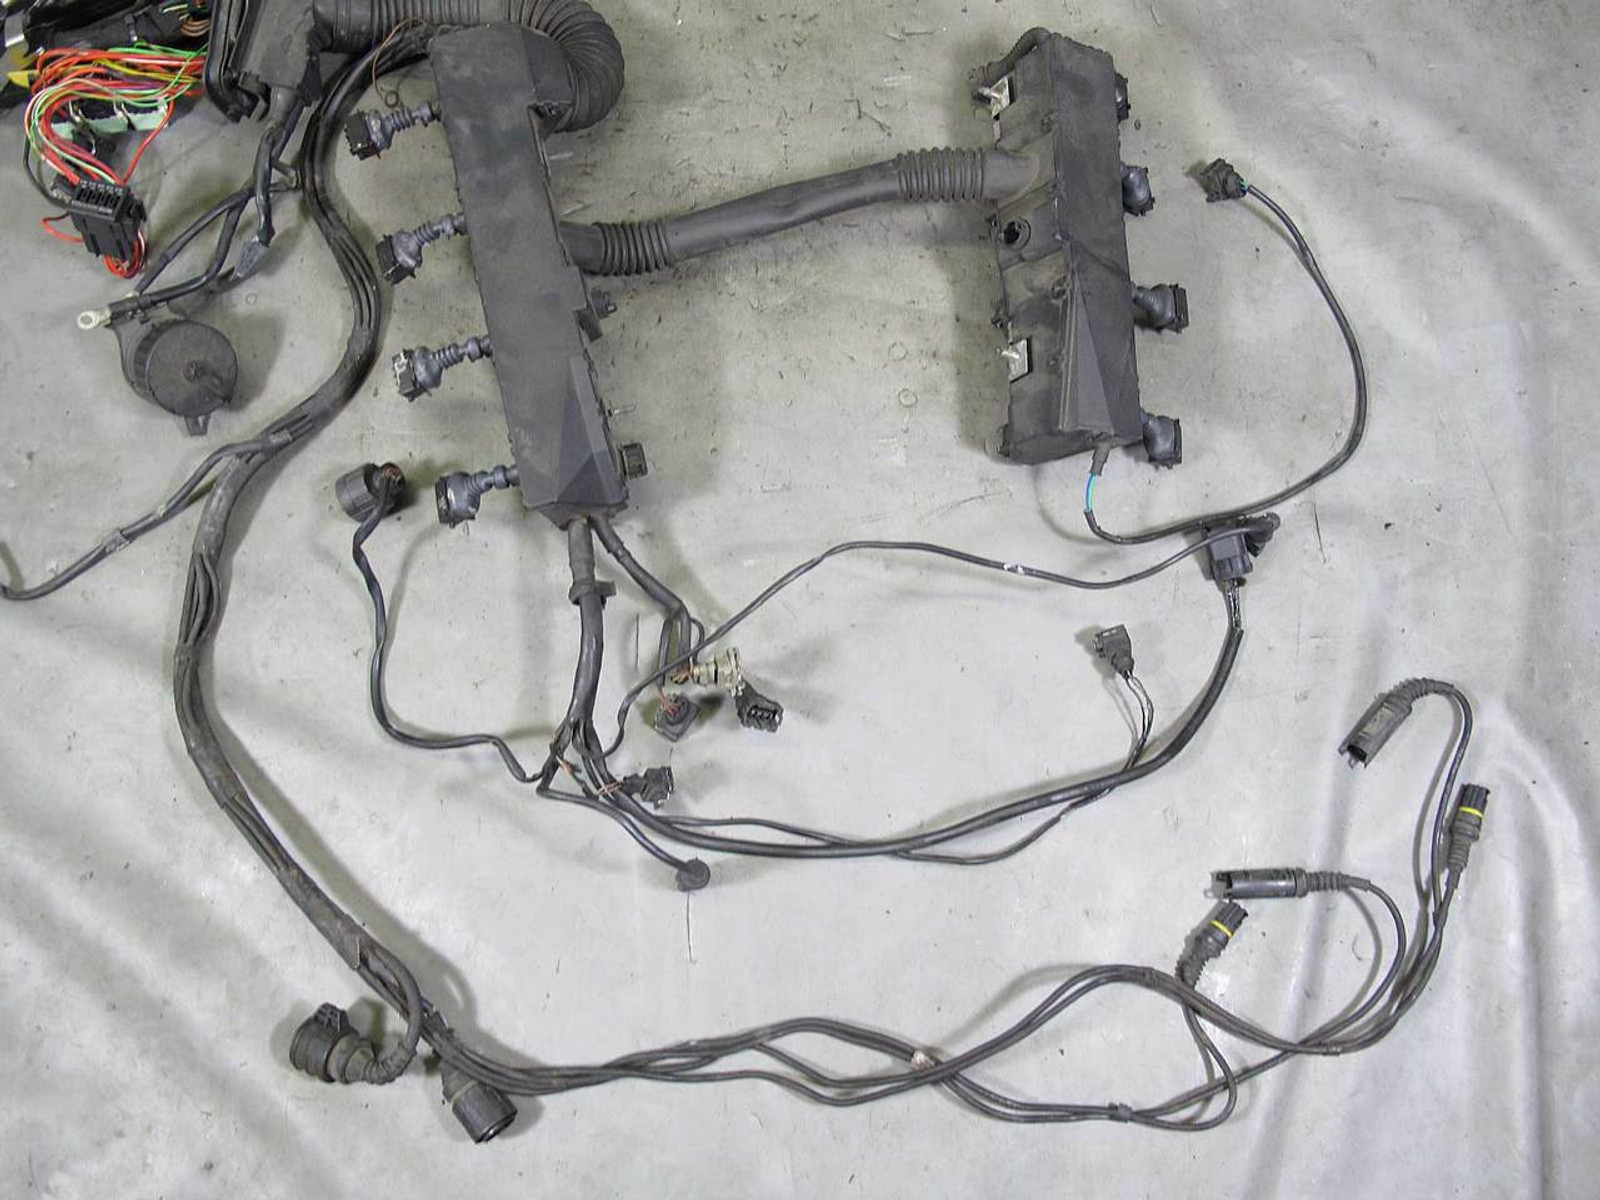 bmw 740il engine wiring harness wiring diagram third level bmw 740il engine swap 1996 1997 bmw [ 1280 x 960 Pixel ]